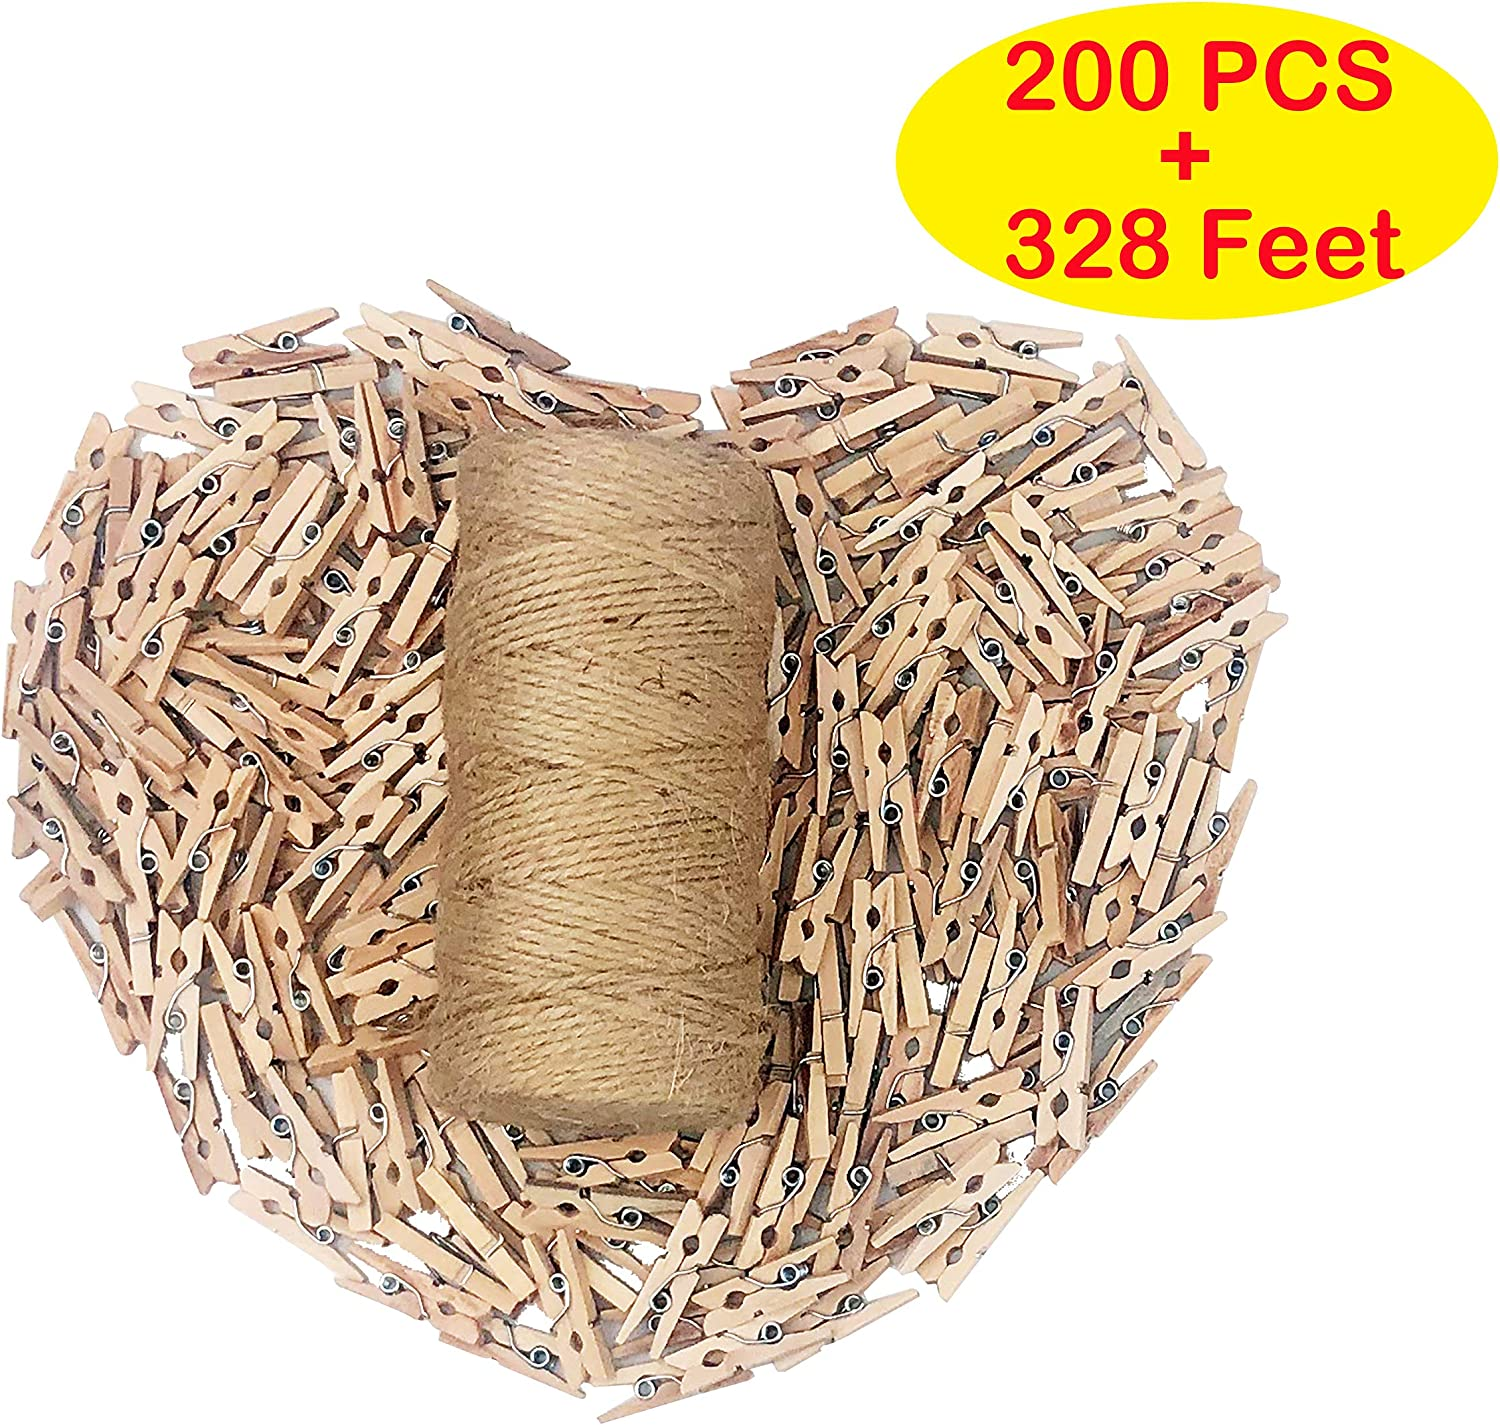 Aucheer 200PCS Mini Decorative Clothespins, 328 Feet Nature Jute Twine String with 200 Tiny Wooden Clothespins Clips Peg Pins for Photo Picture Paper Art Craft Wall décor Home Decoration